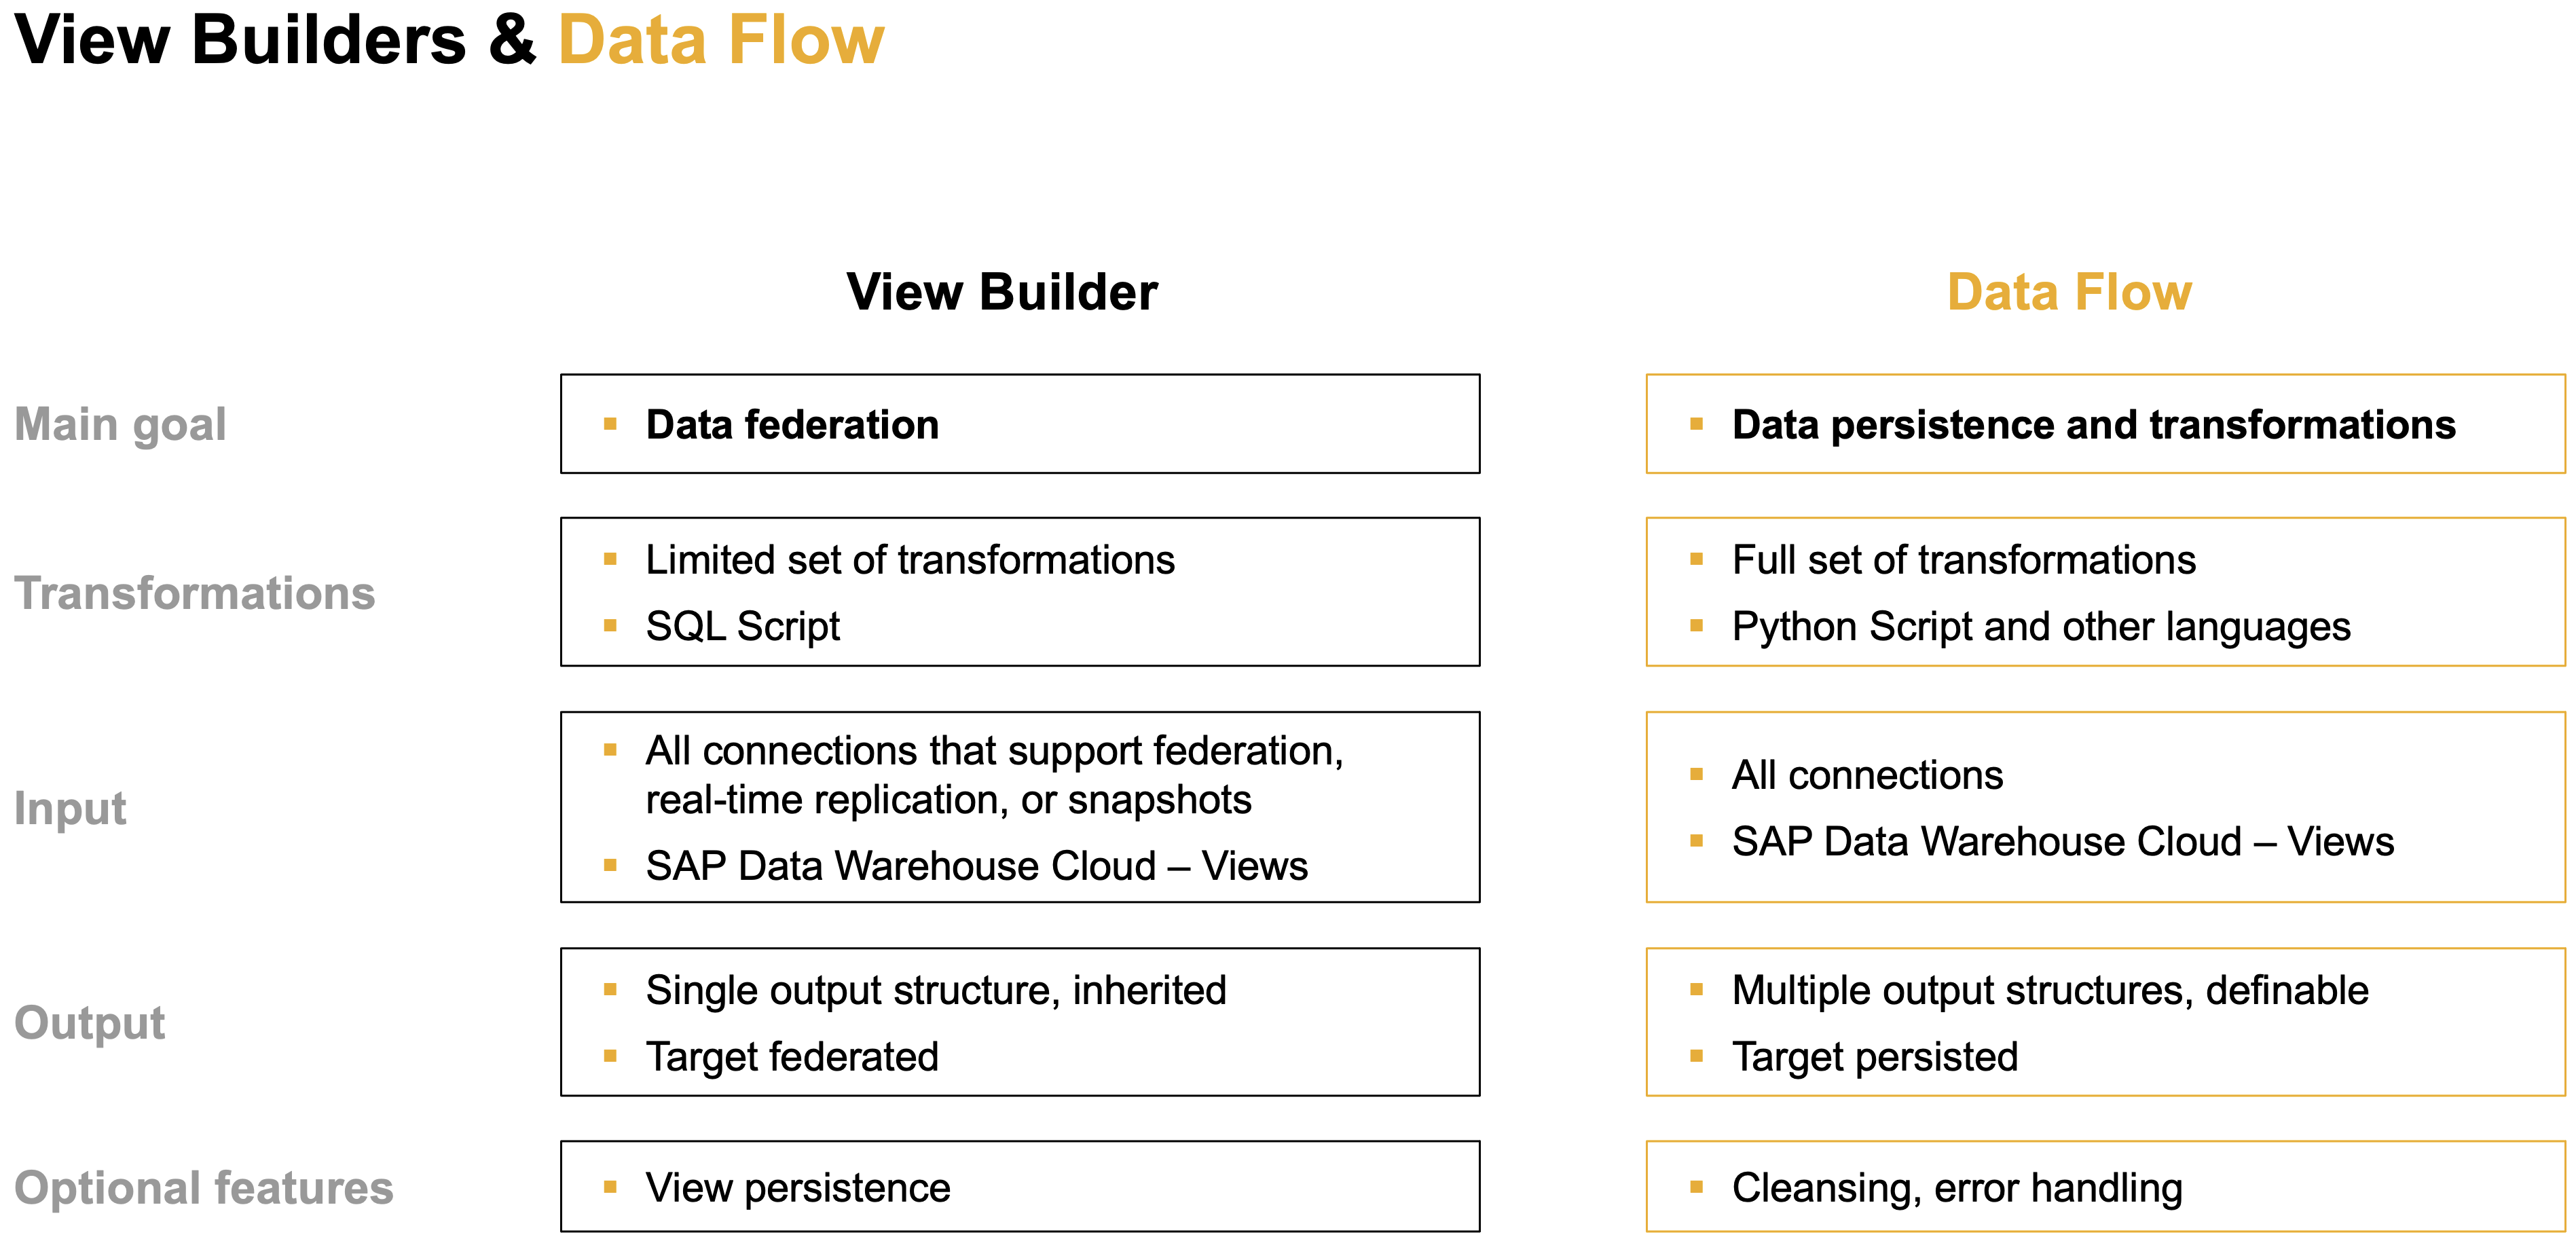 View%20Builder%20and%20Data%20Flow%20comparison